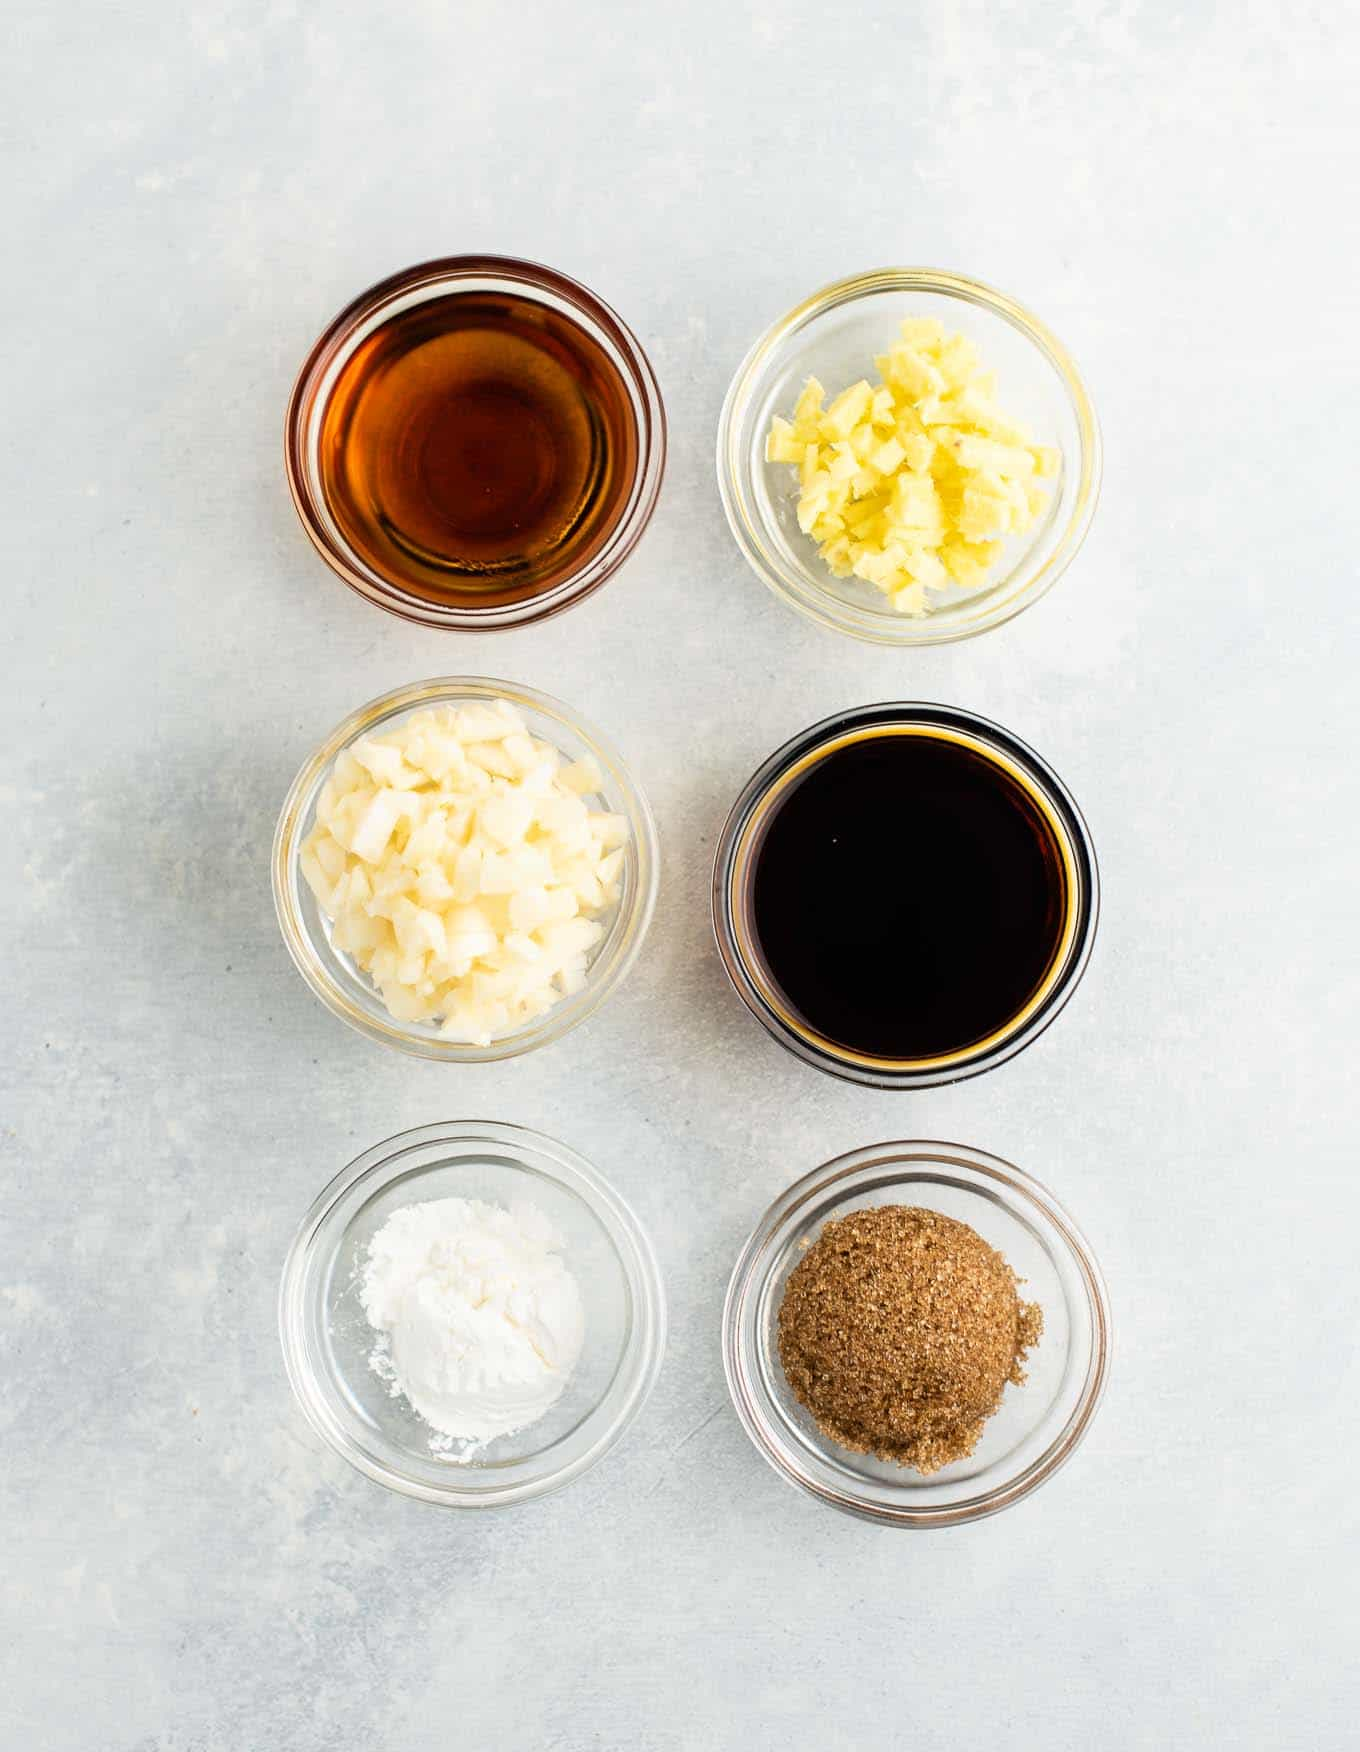 6 small bowls with sesame oil, ginger, garlic, soy sauce, cornstarch, and brown sugar